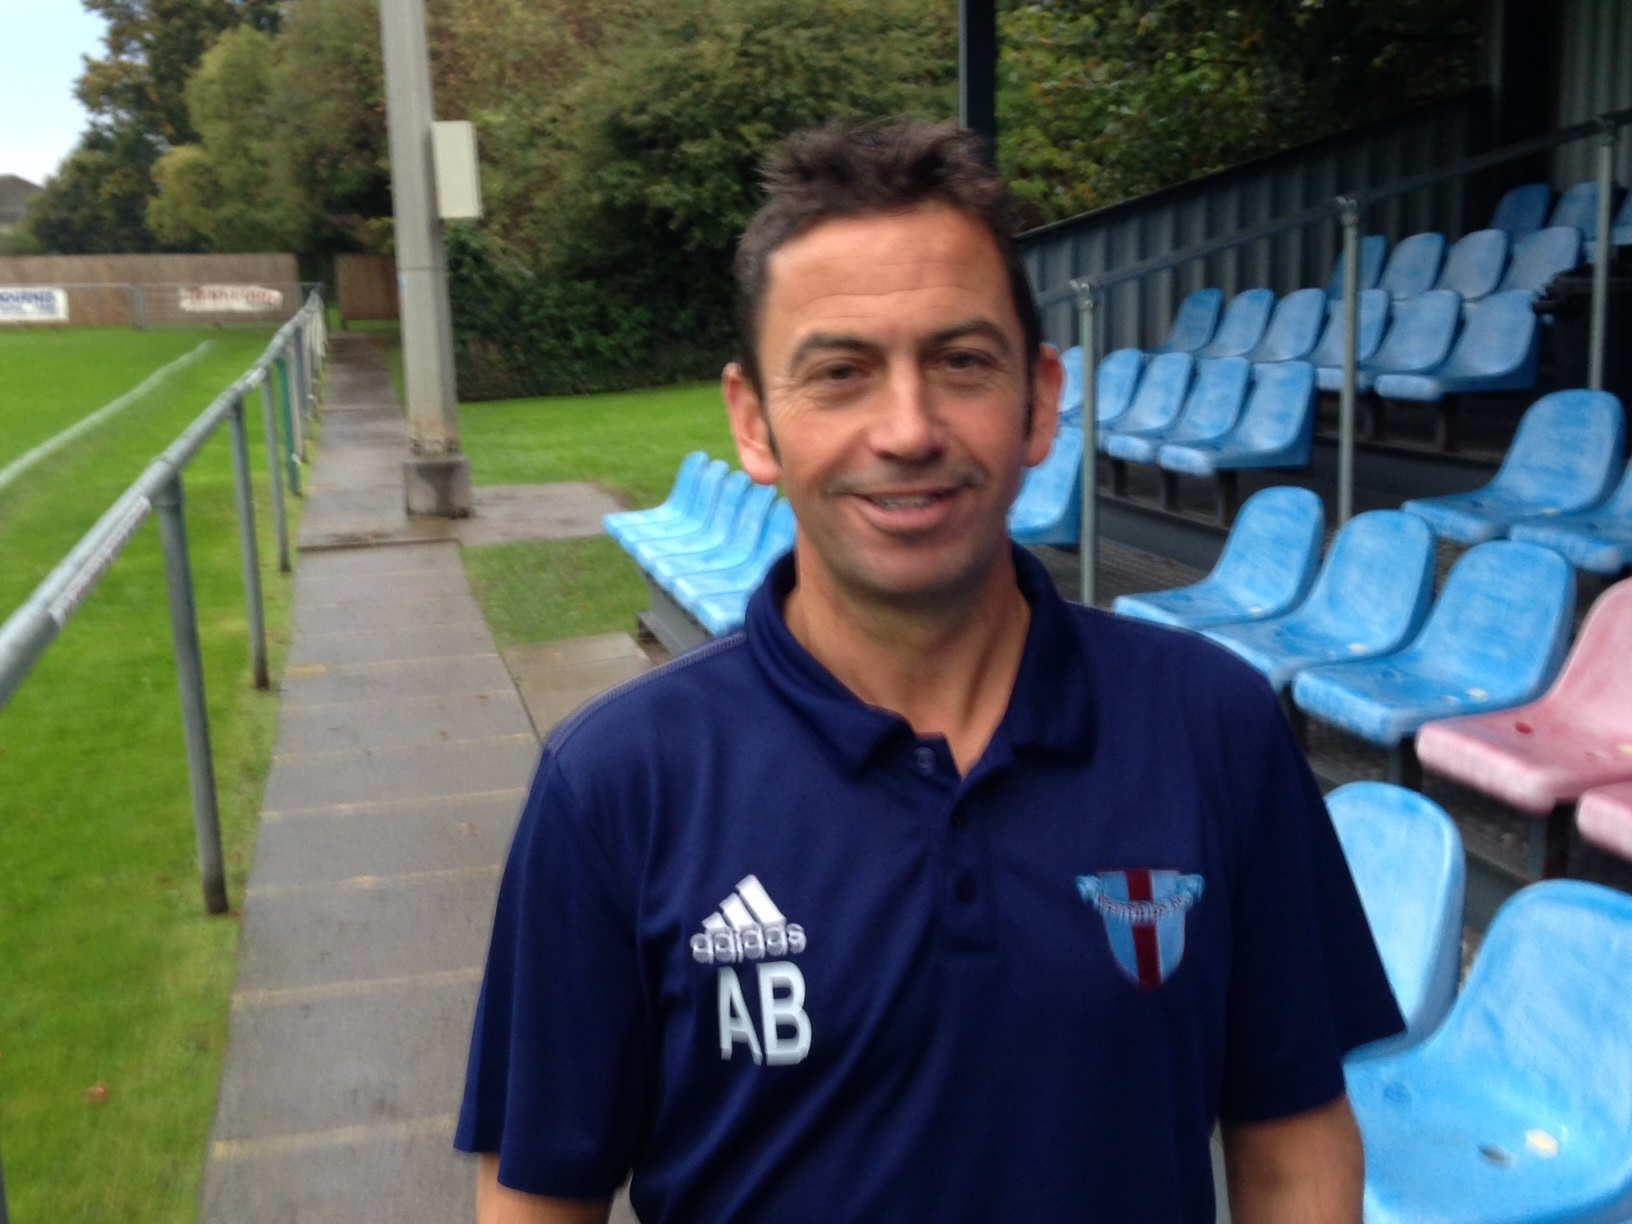 Westfields manager Andy Bevan hopes to lead his team to the HFA County Cup final